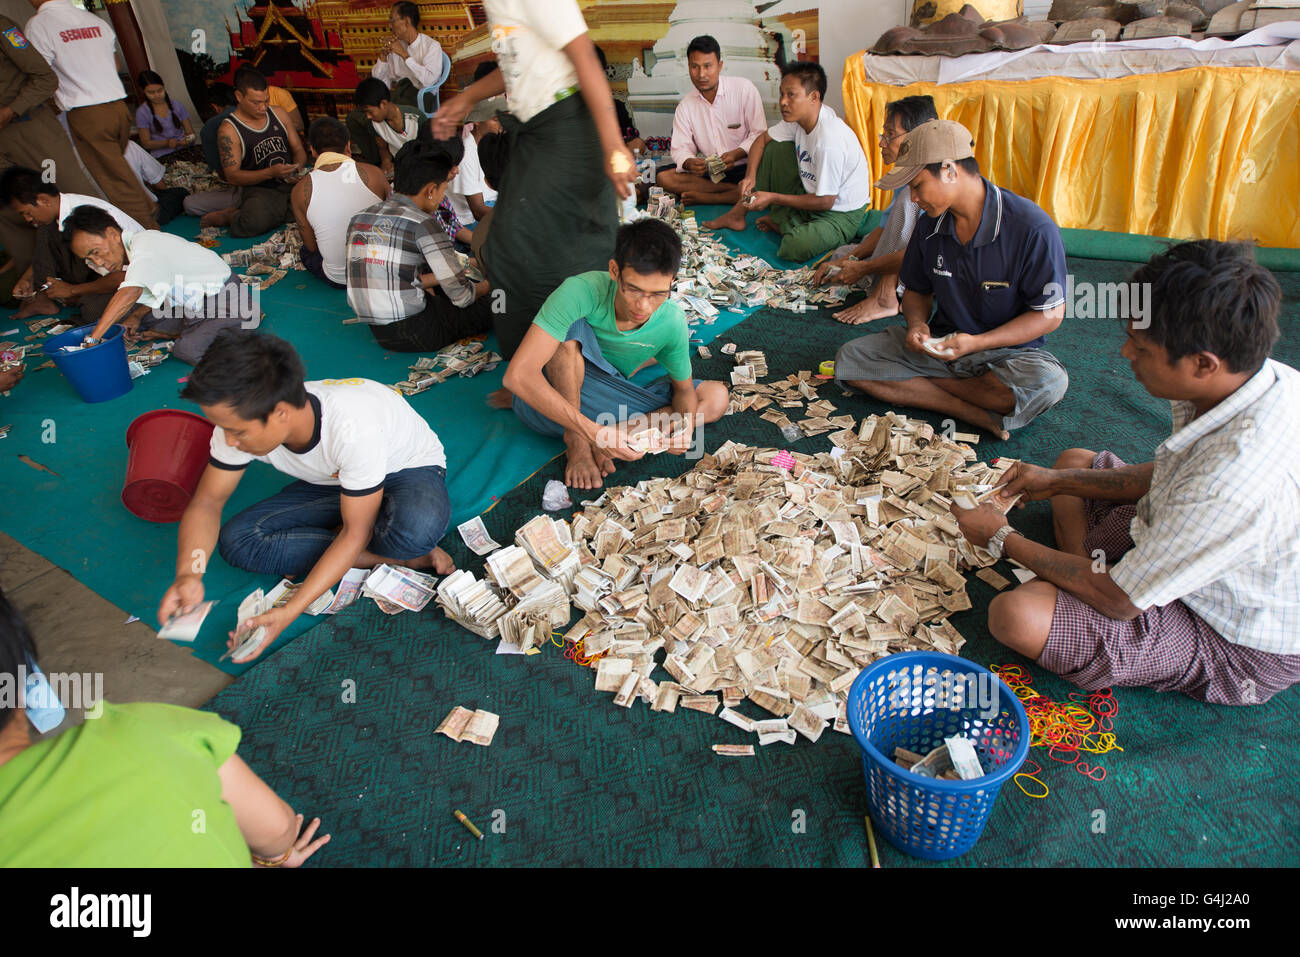 People counting the money alms collecting, Shwezigon Pagoda, Nyanung-U, Mandalay Region, Myanmar - Stock Image